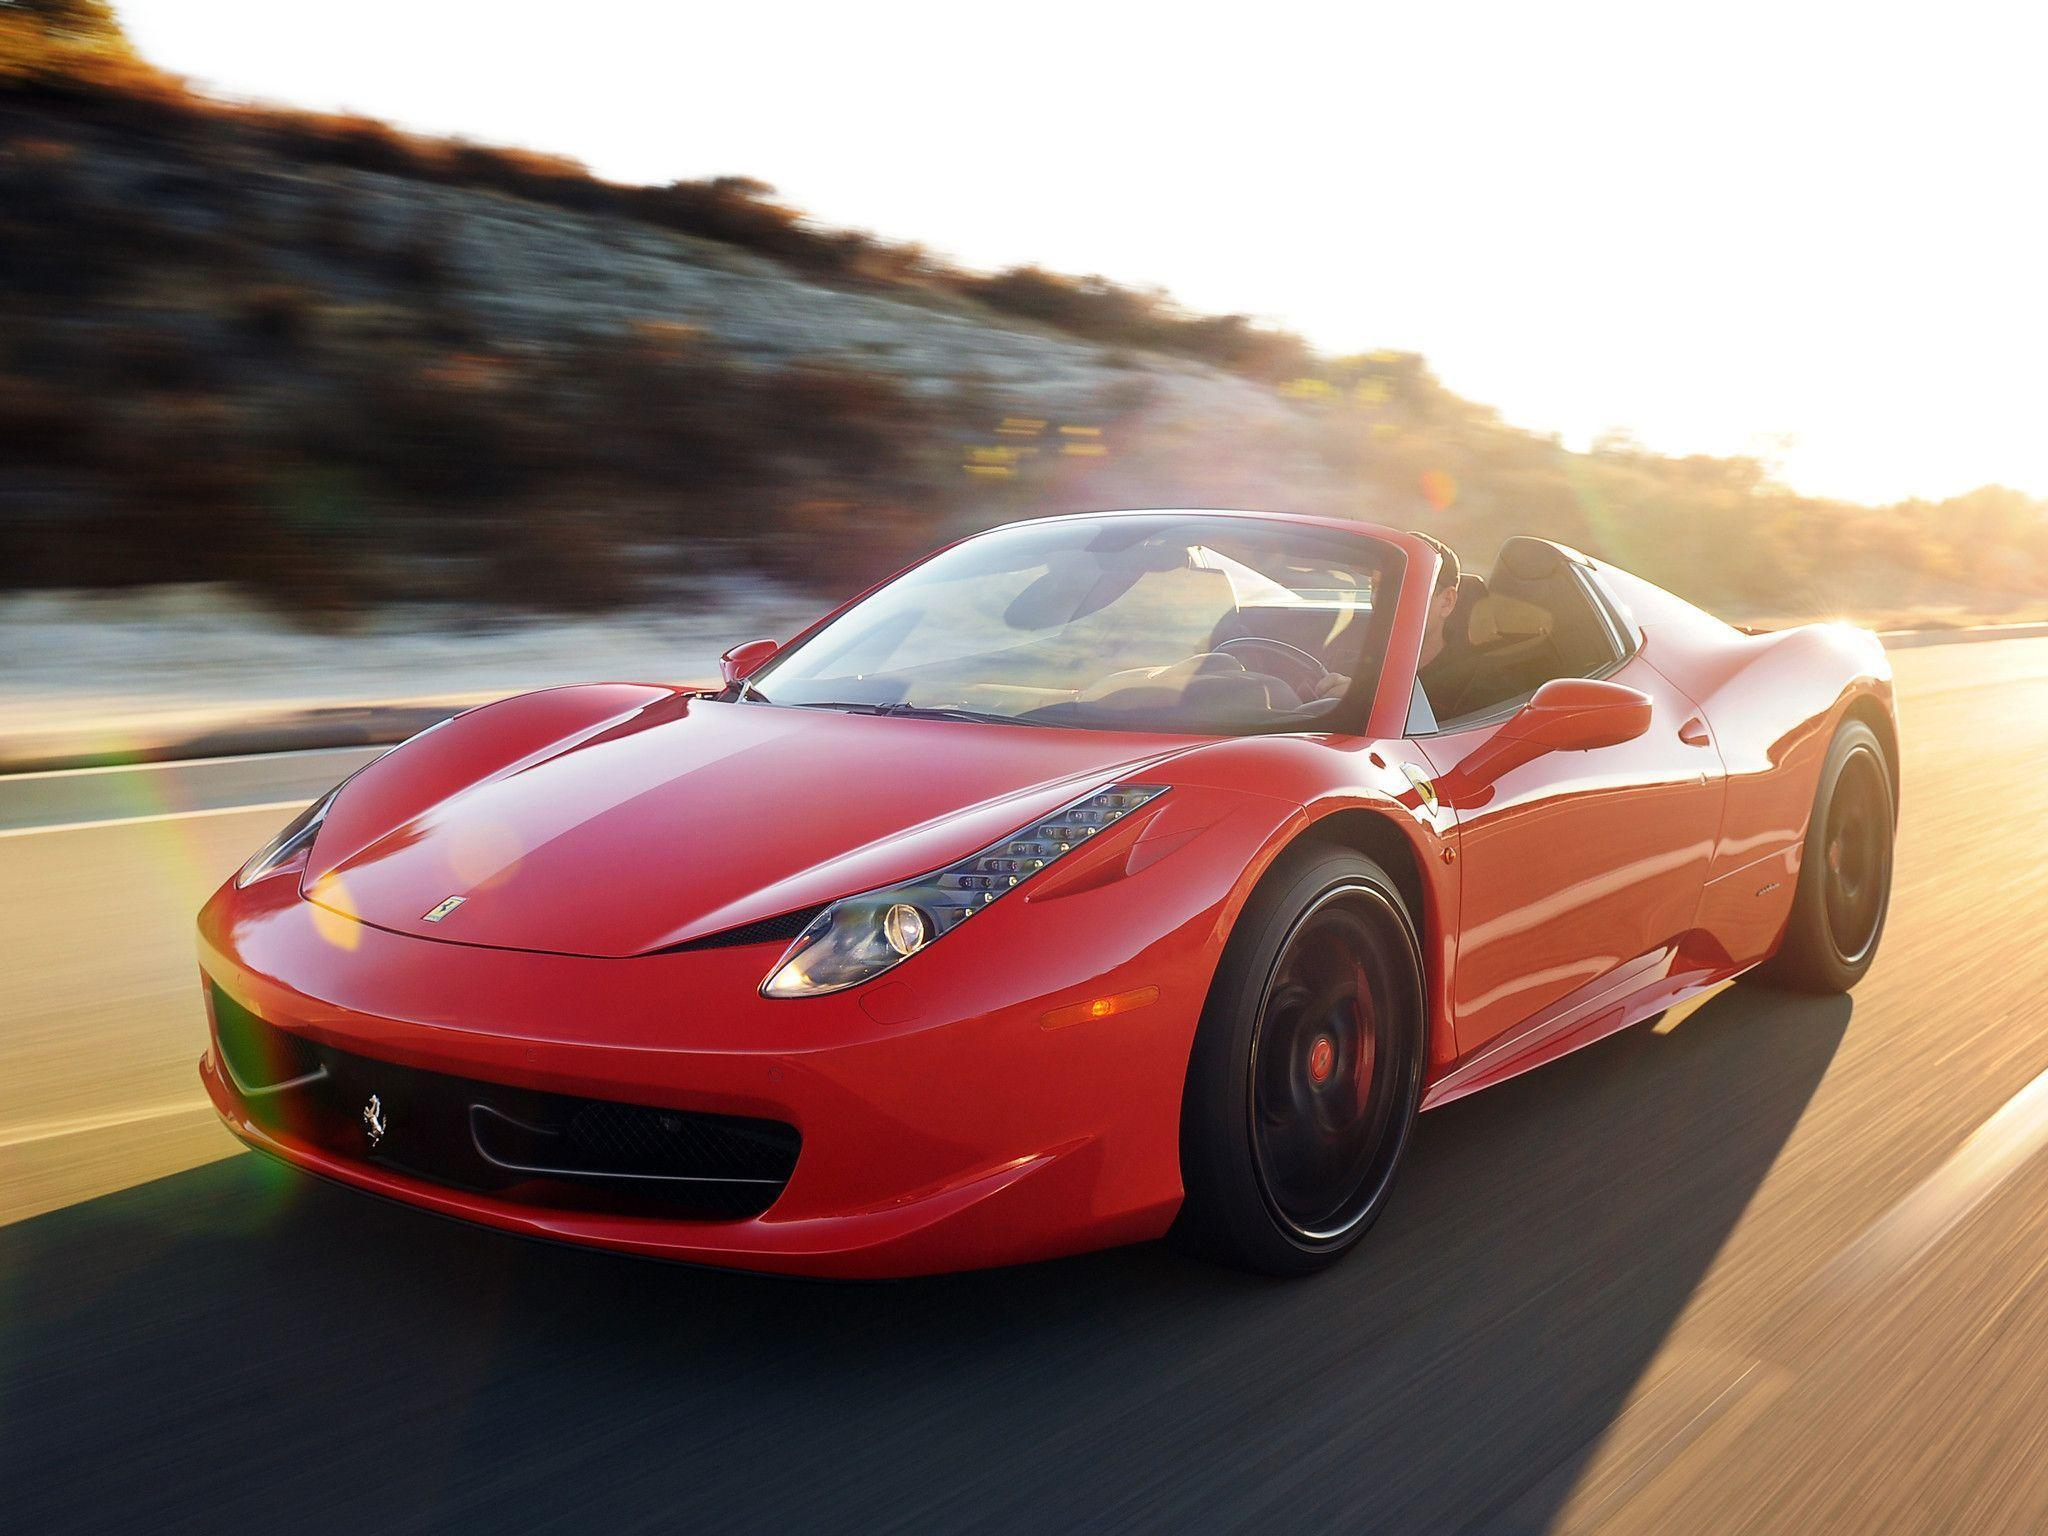 Ferrari 458 Italia Wallpaper Hd Ferrari 458 Spider Wallpapers Wallpaper Cave